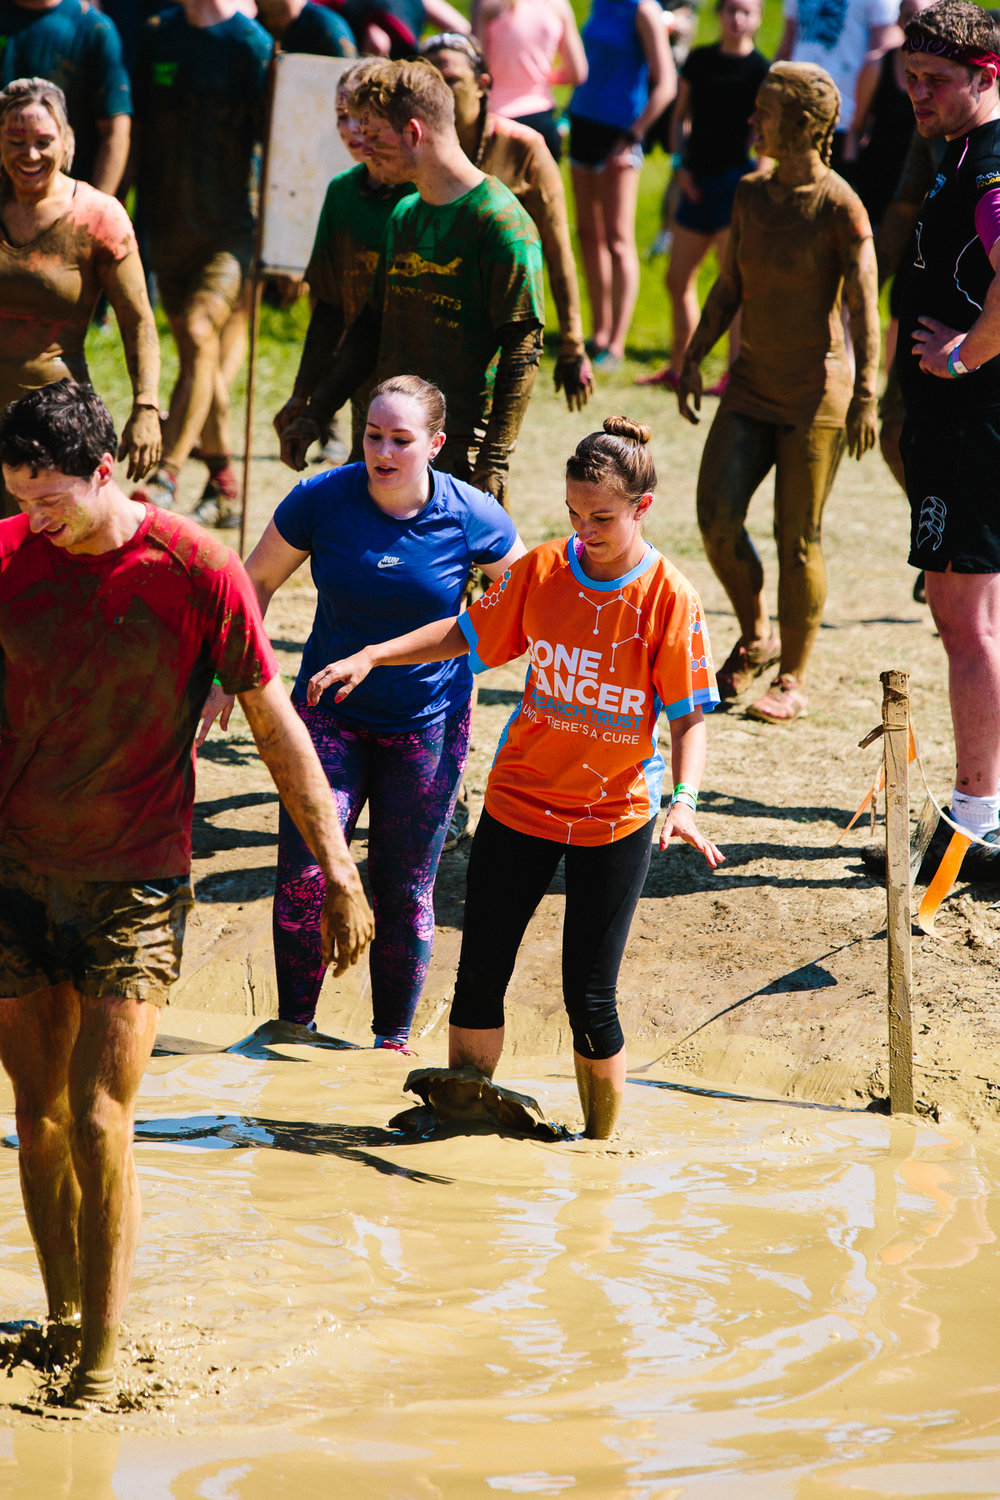 Tough Mudder-Canon180519113104180519.jpg